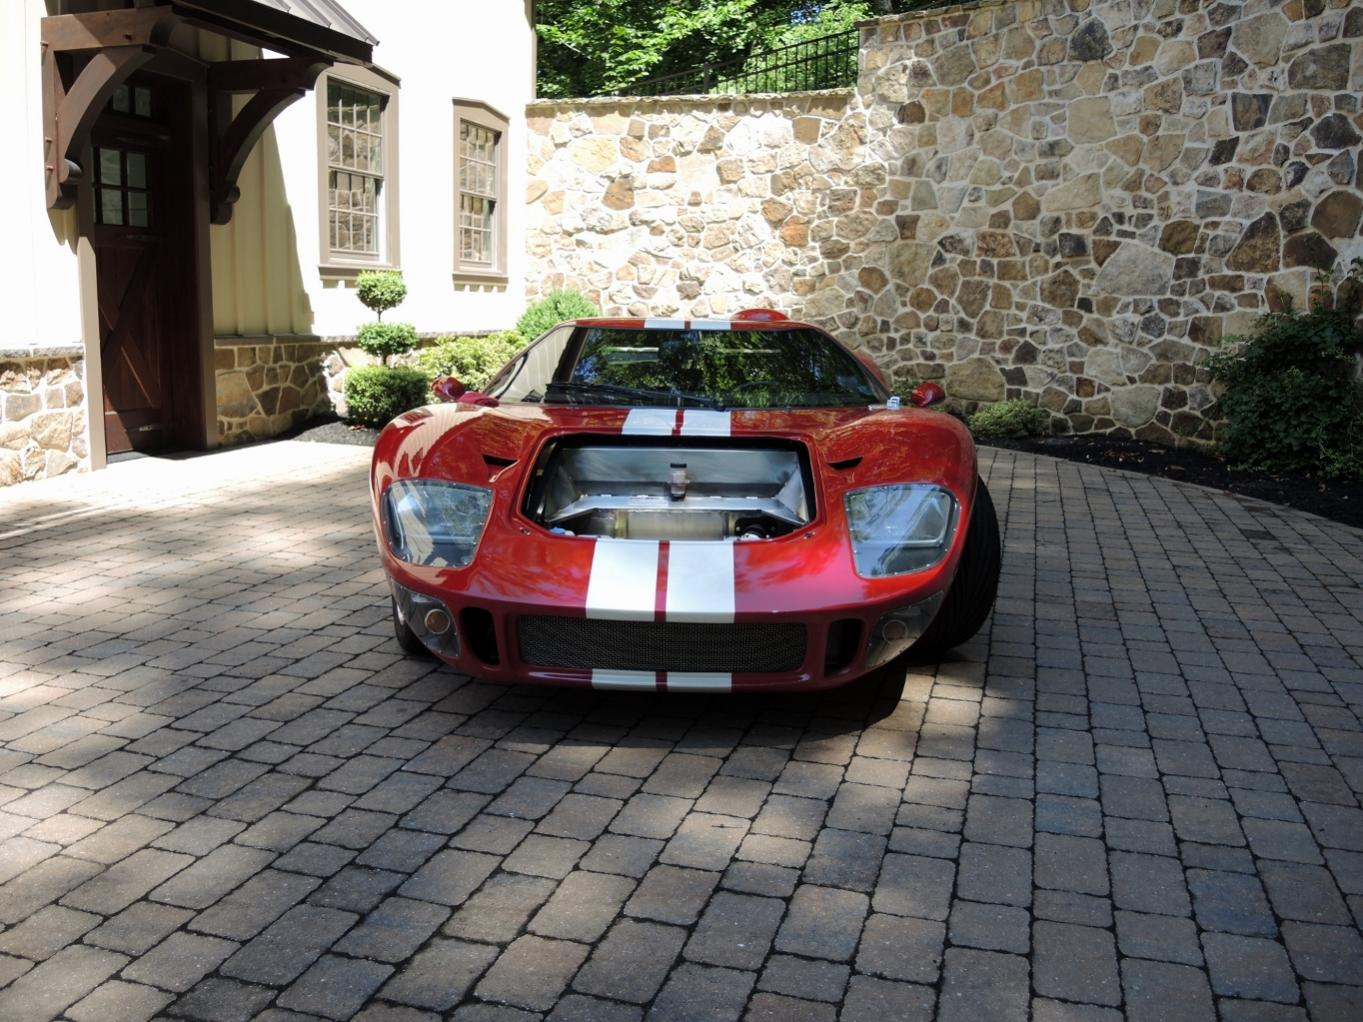 1966 CAV GT For Sale **SOLD**-front-o3-1920x1440-1364x1023-jpg